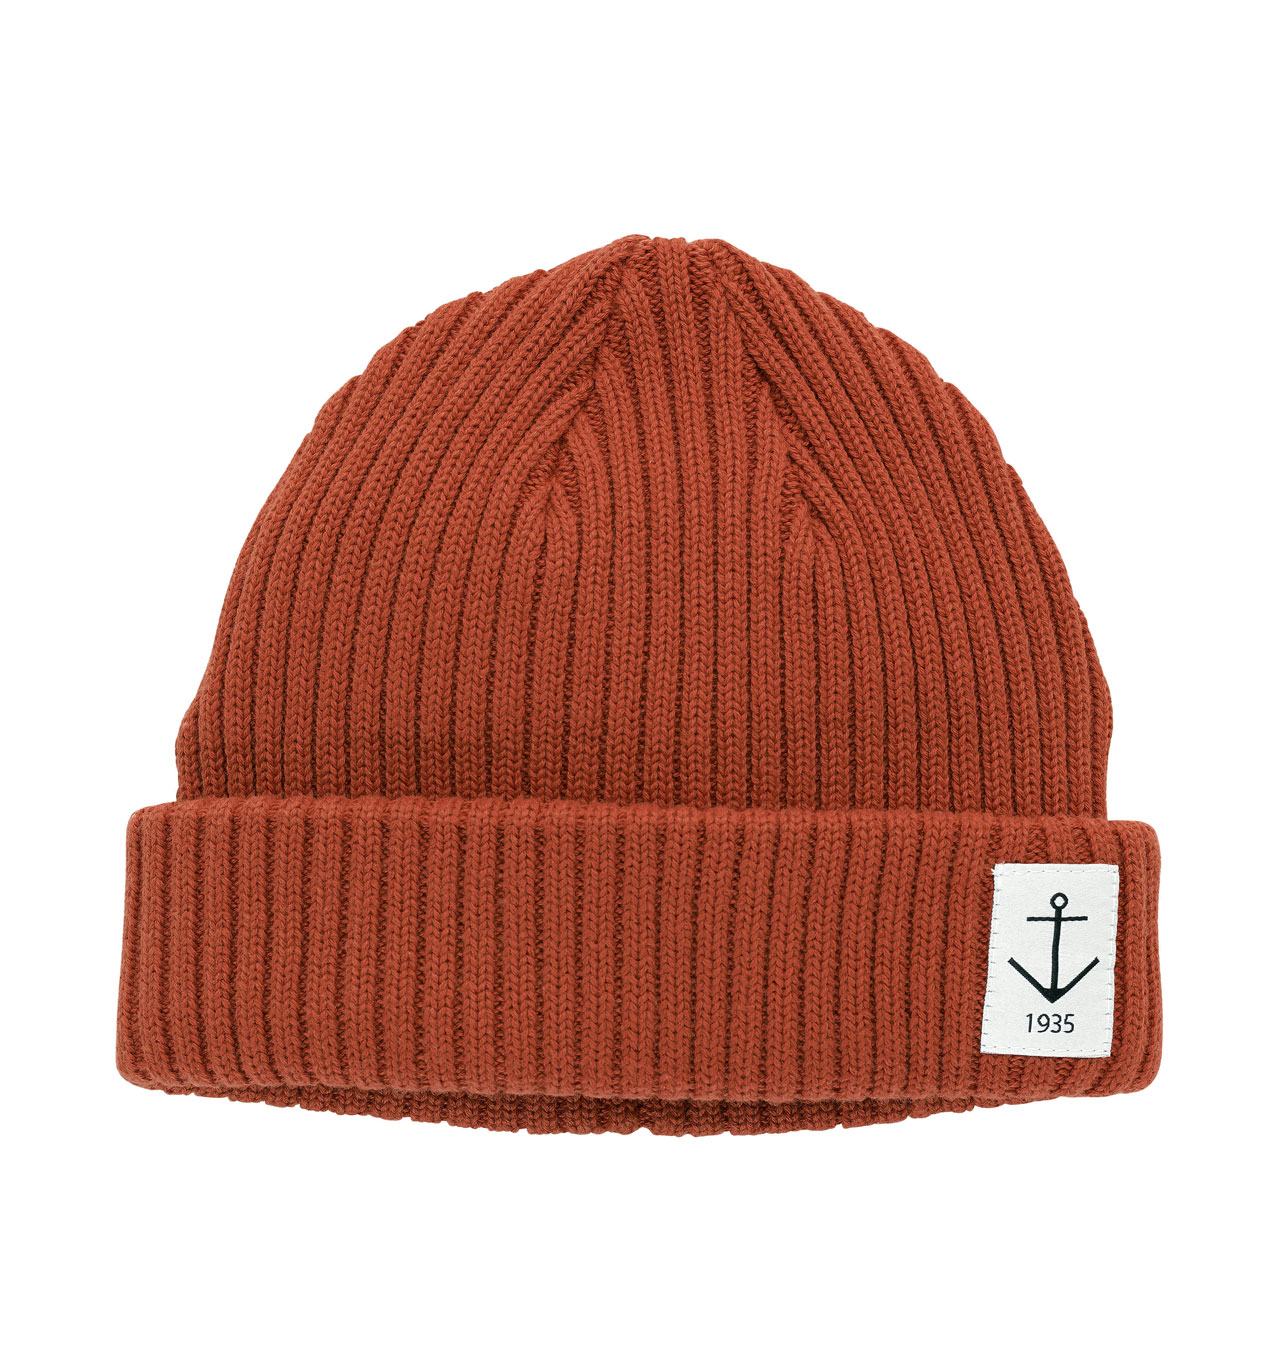 Resteröds - Smula Anchor Beanie - Cuban Red